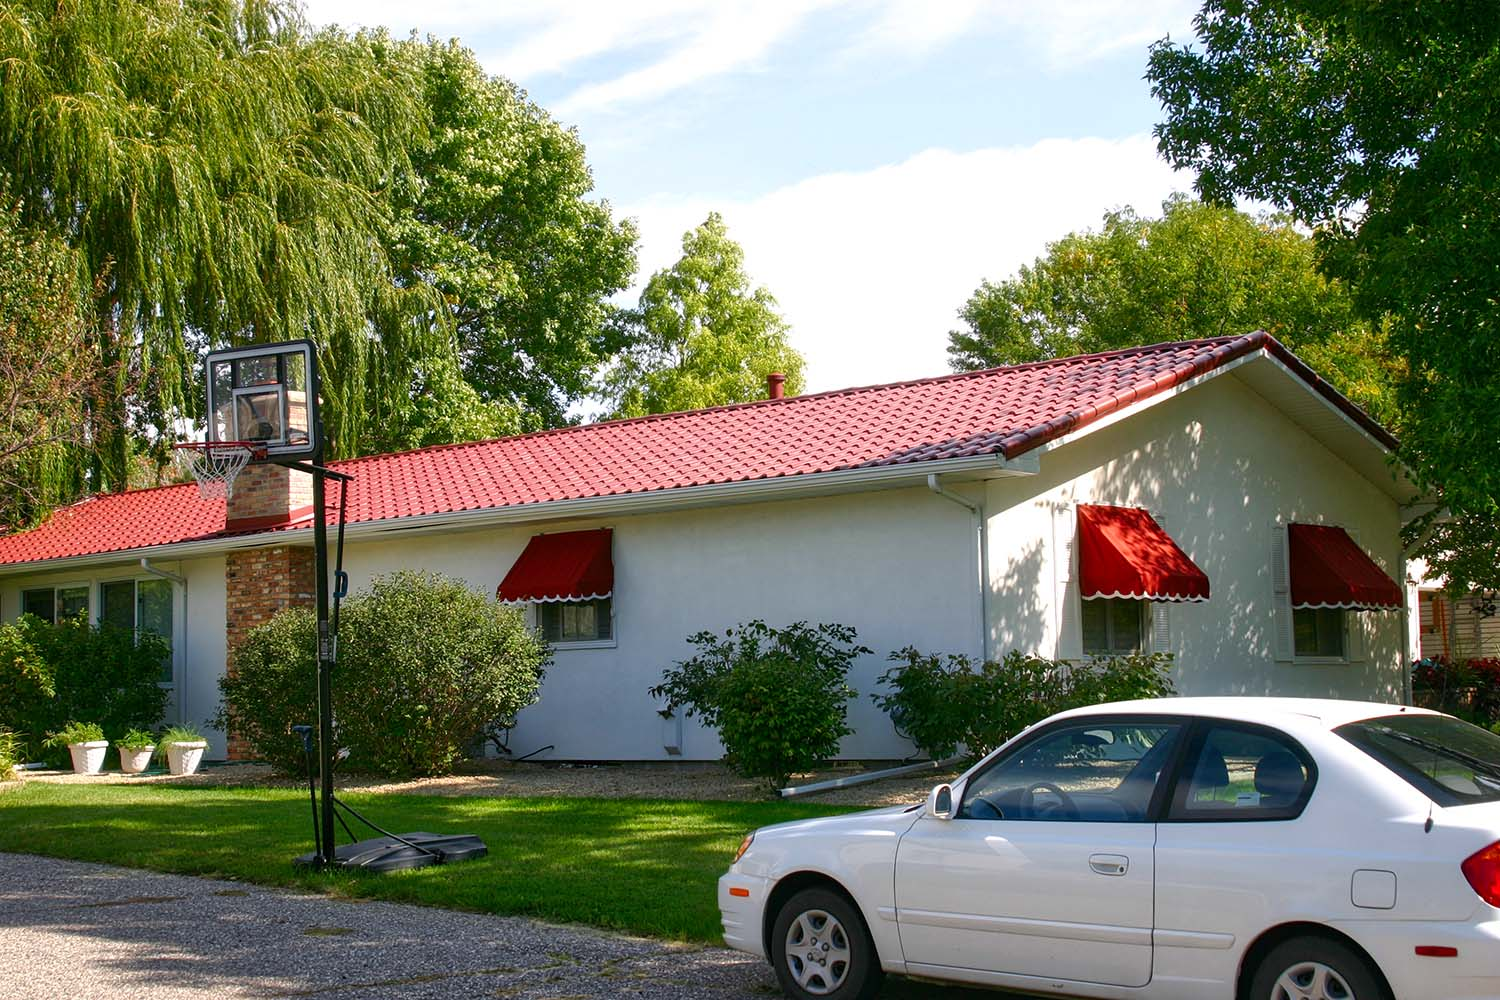 tile red metal mediterranean tile roof open gable rancher